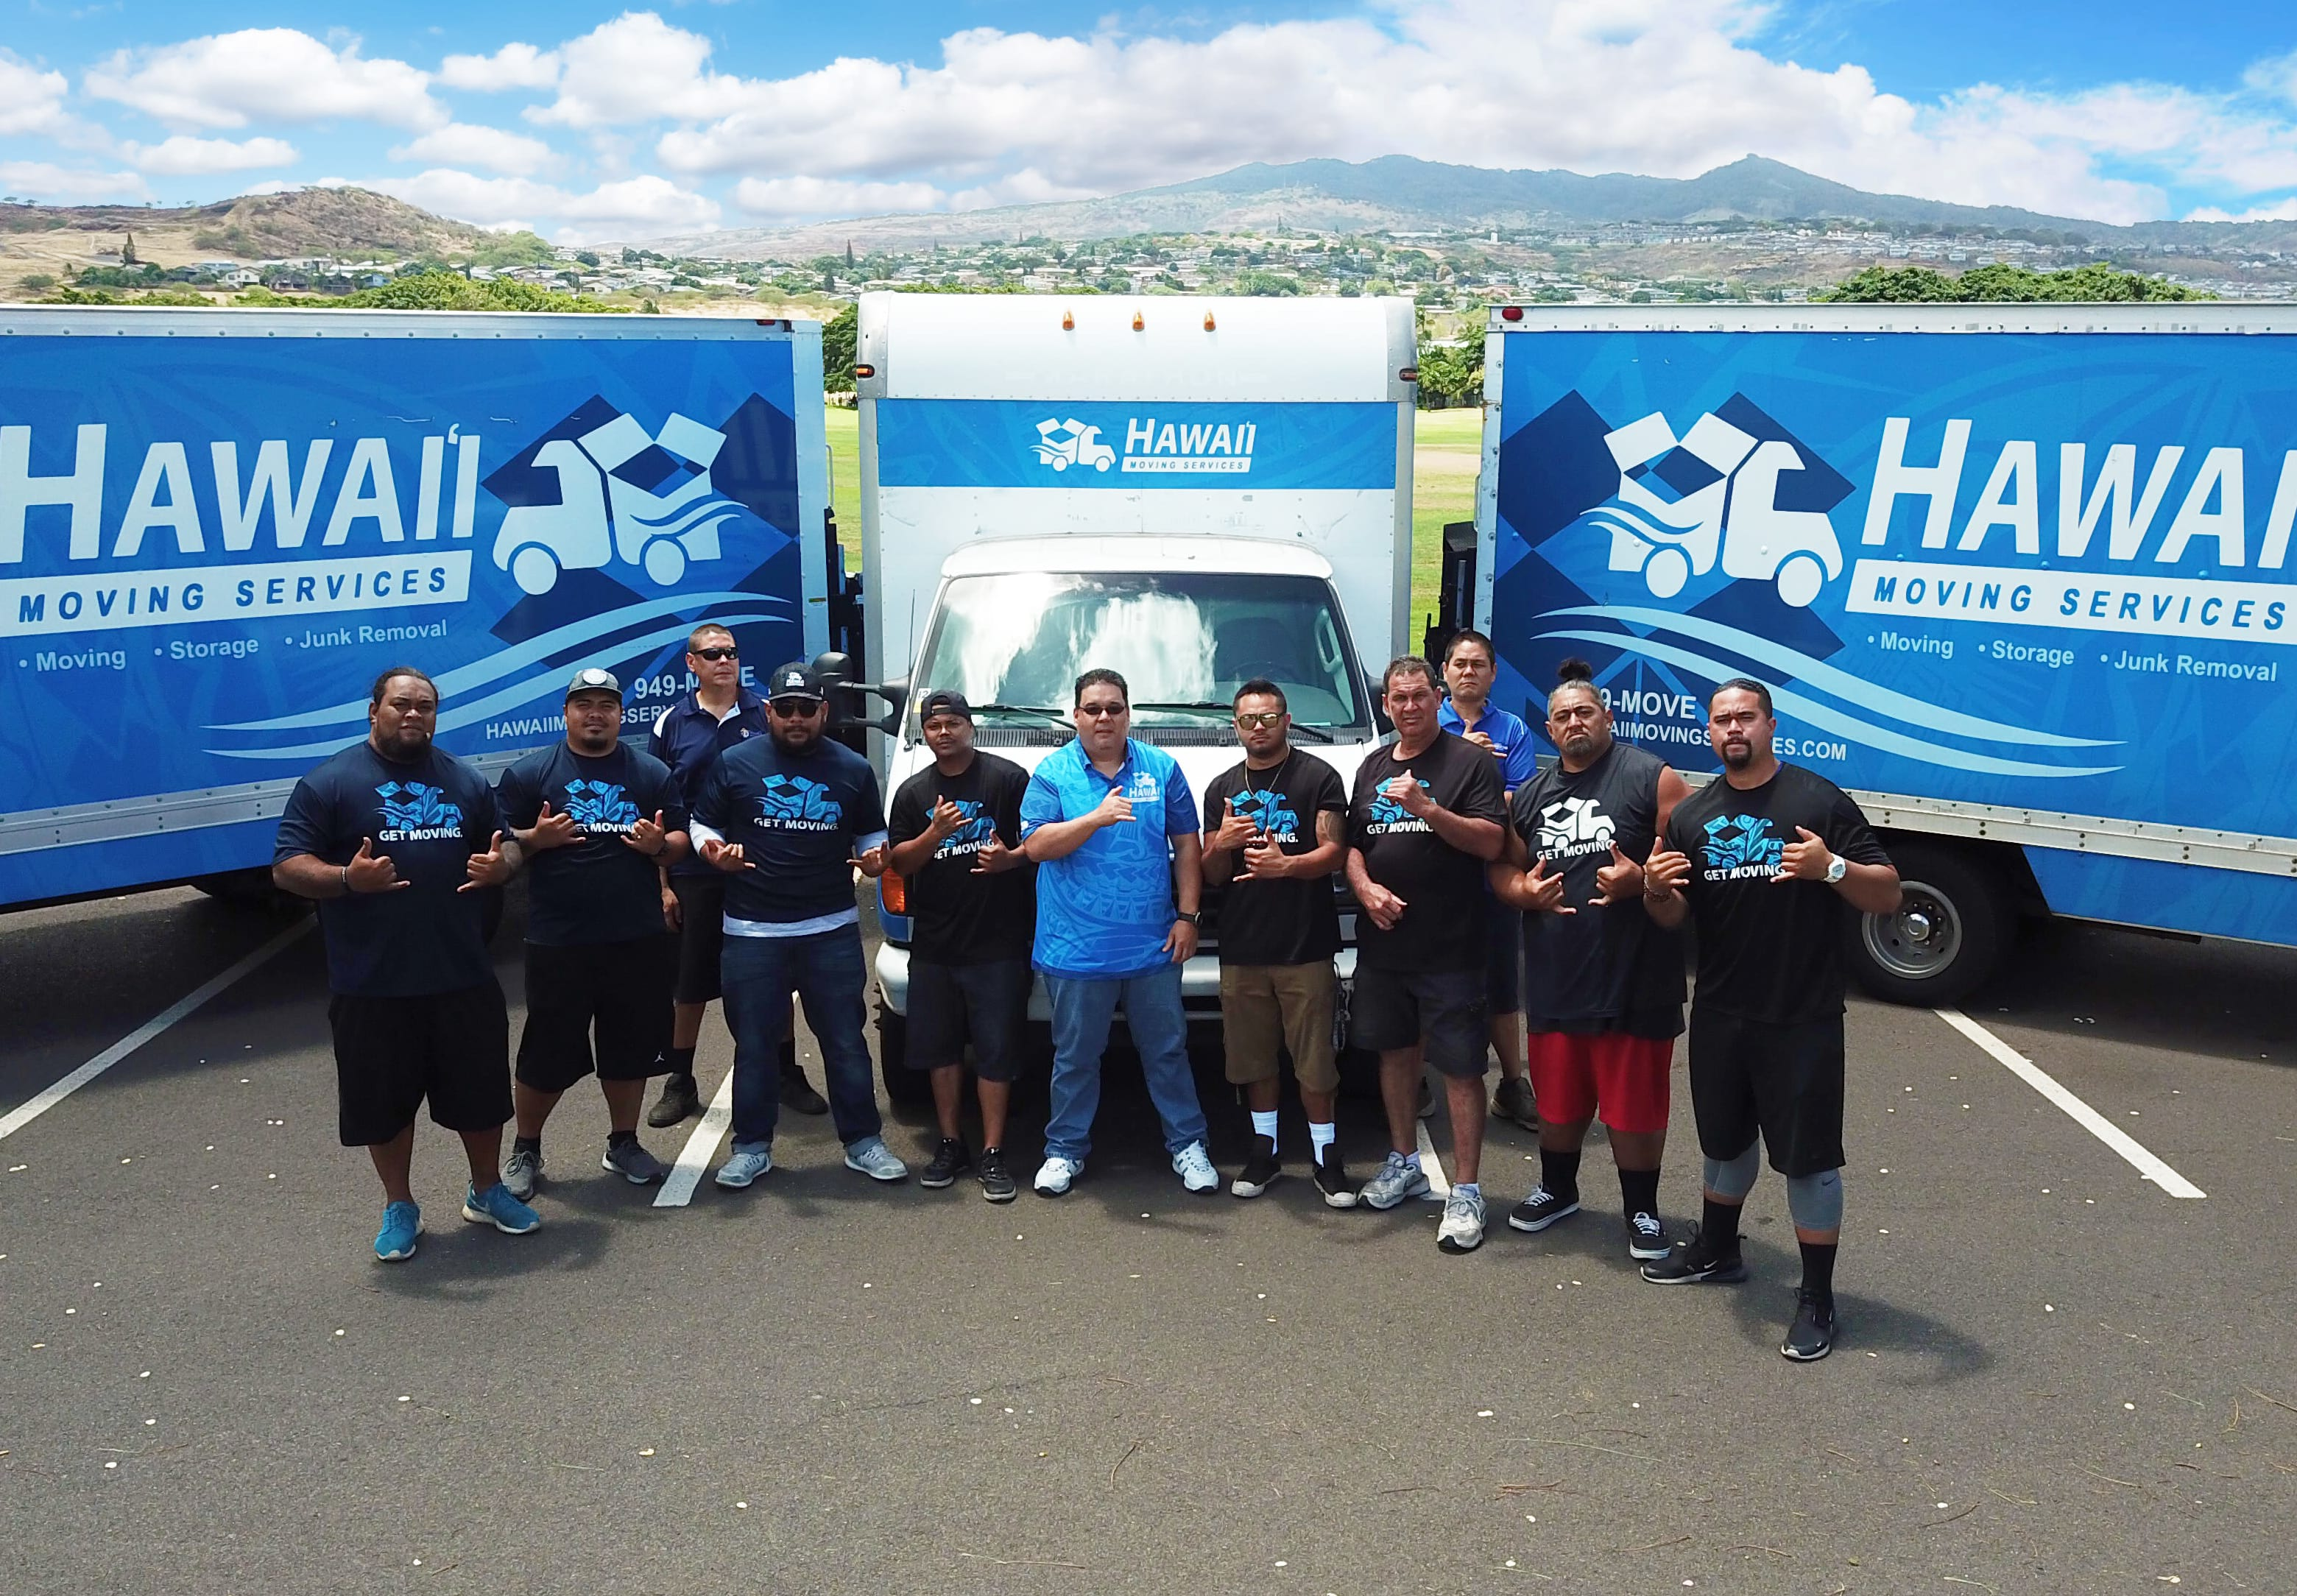 Image of our Hawai'i Self Storage moving services team